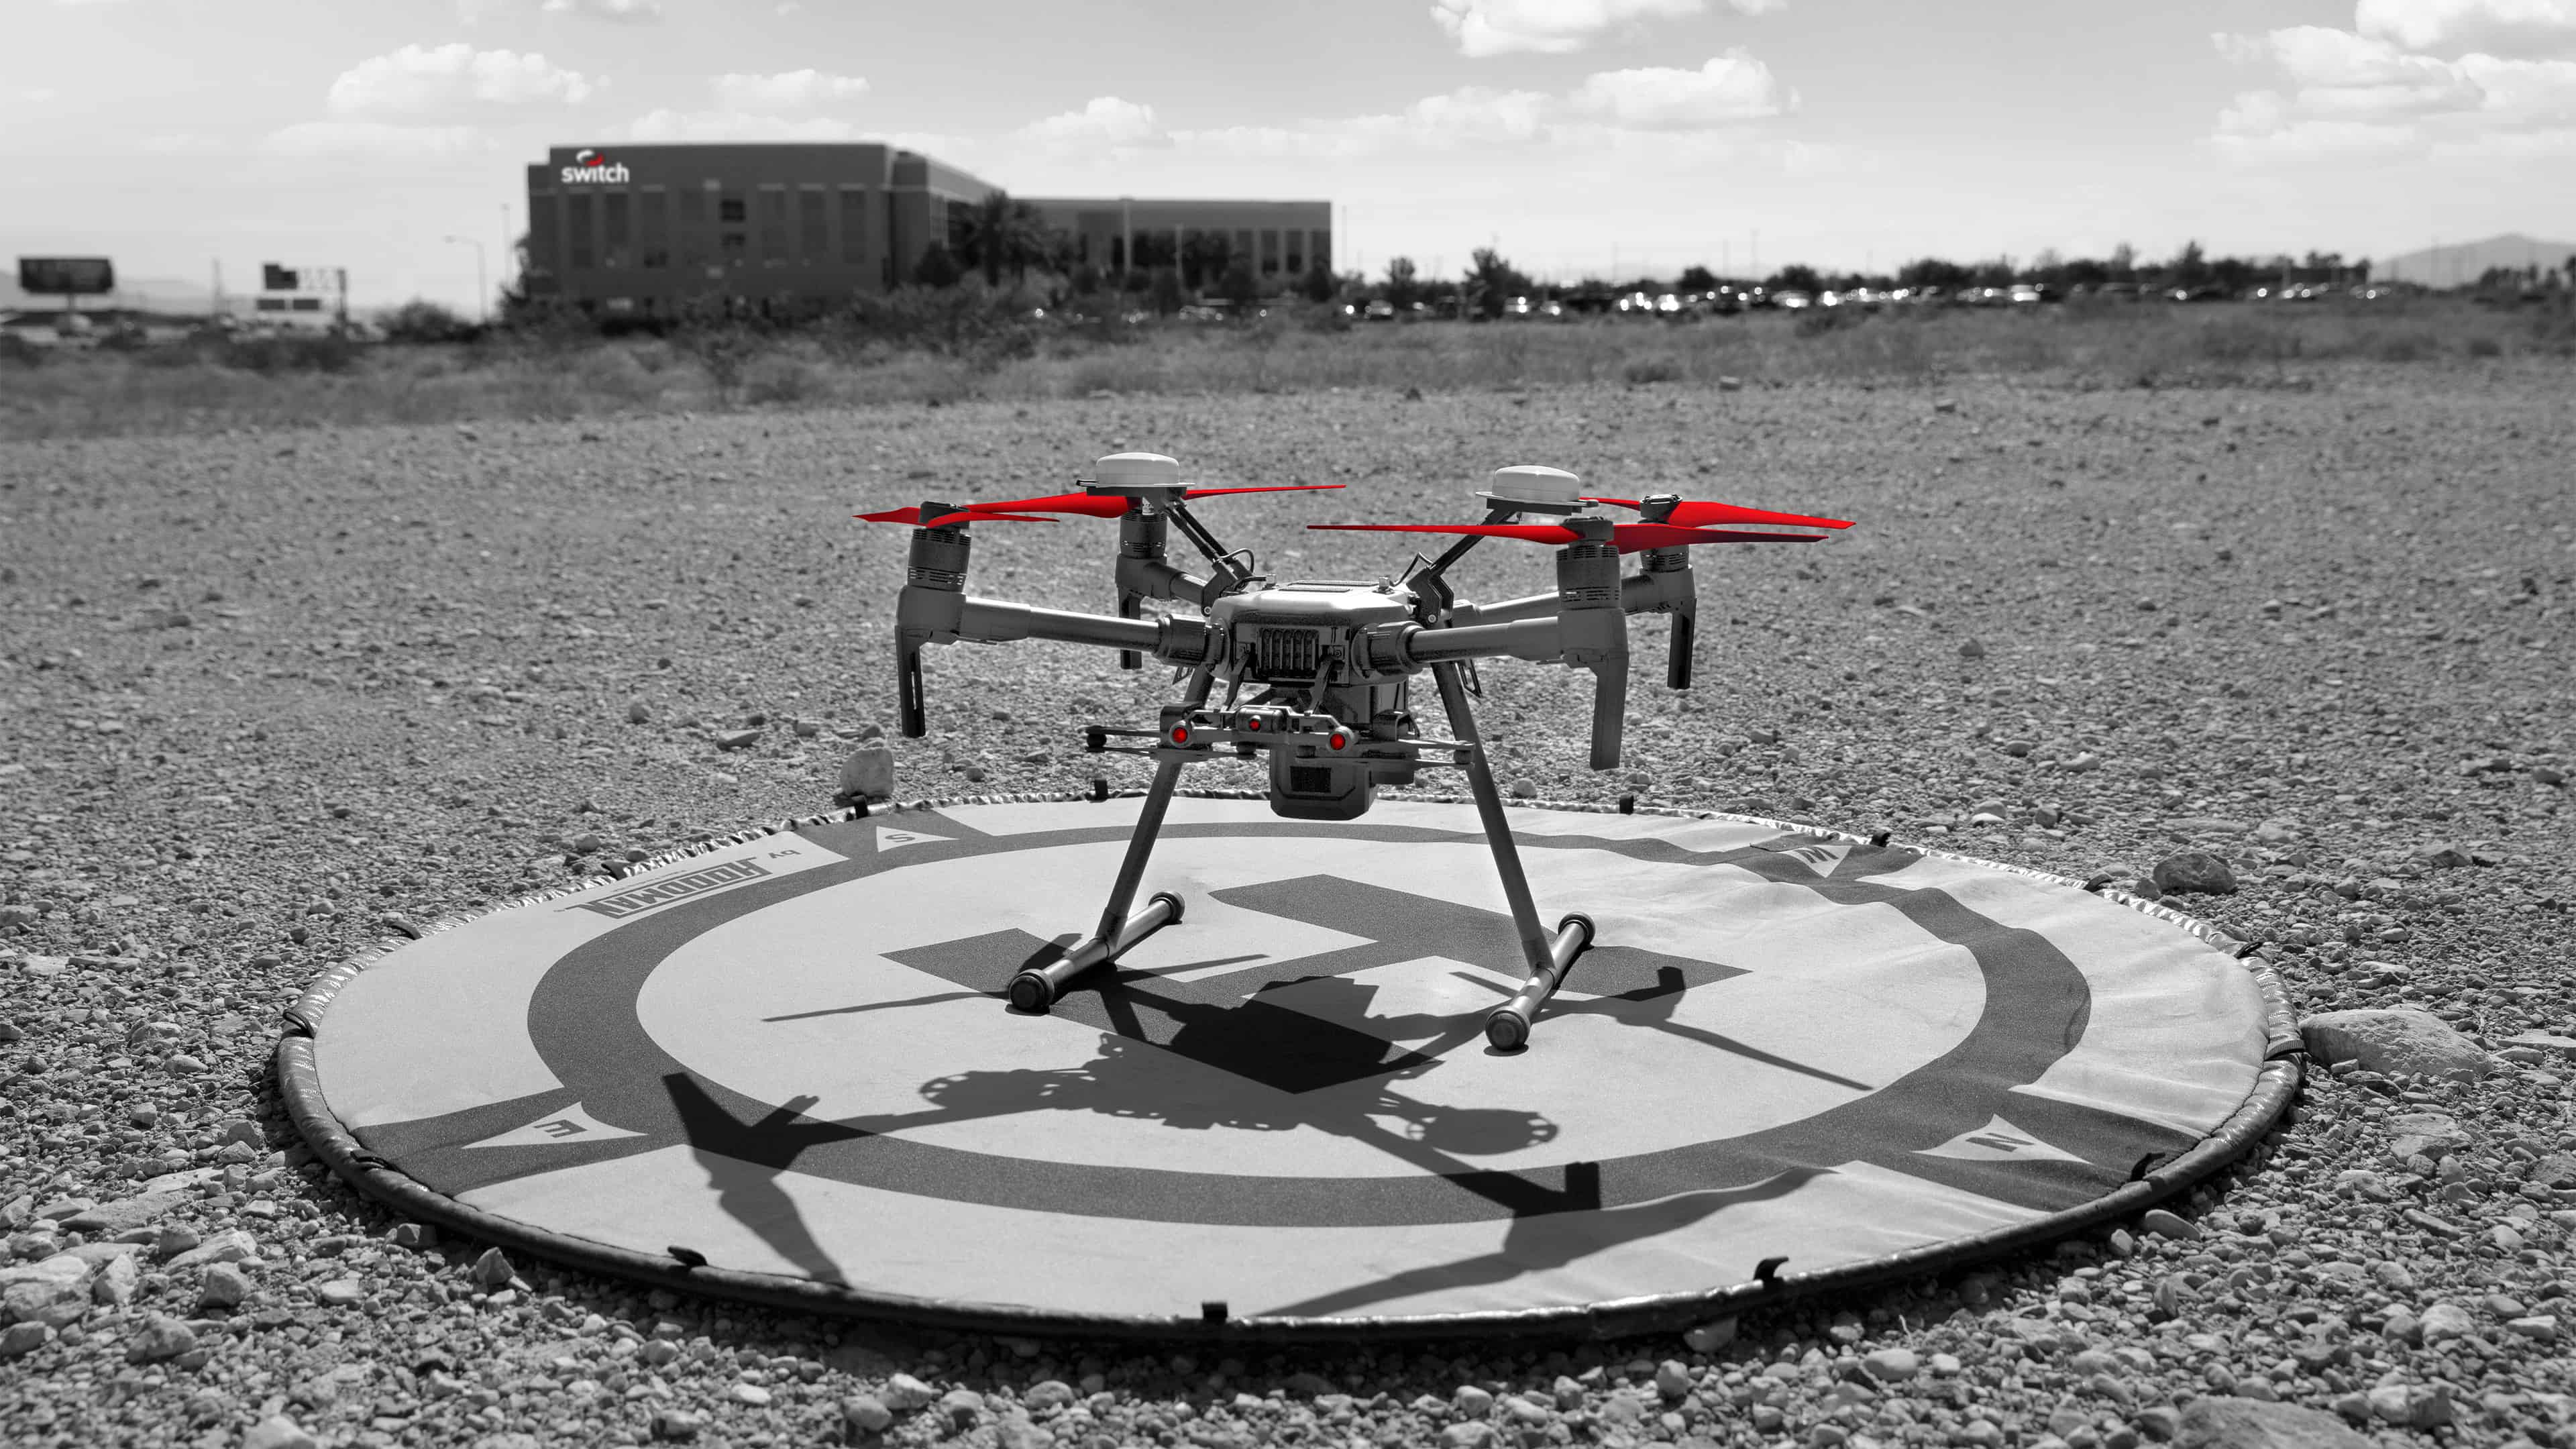 The State of Nevada, City of Reno, Las Vegas, Henderson, Searchlight, NIAS, and Nevada Partners Complete Historic FAA Unmanned Traffic Management (UTM) Pilot Program